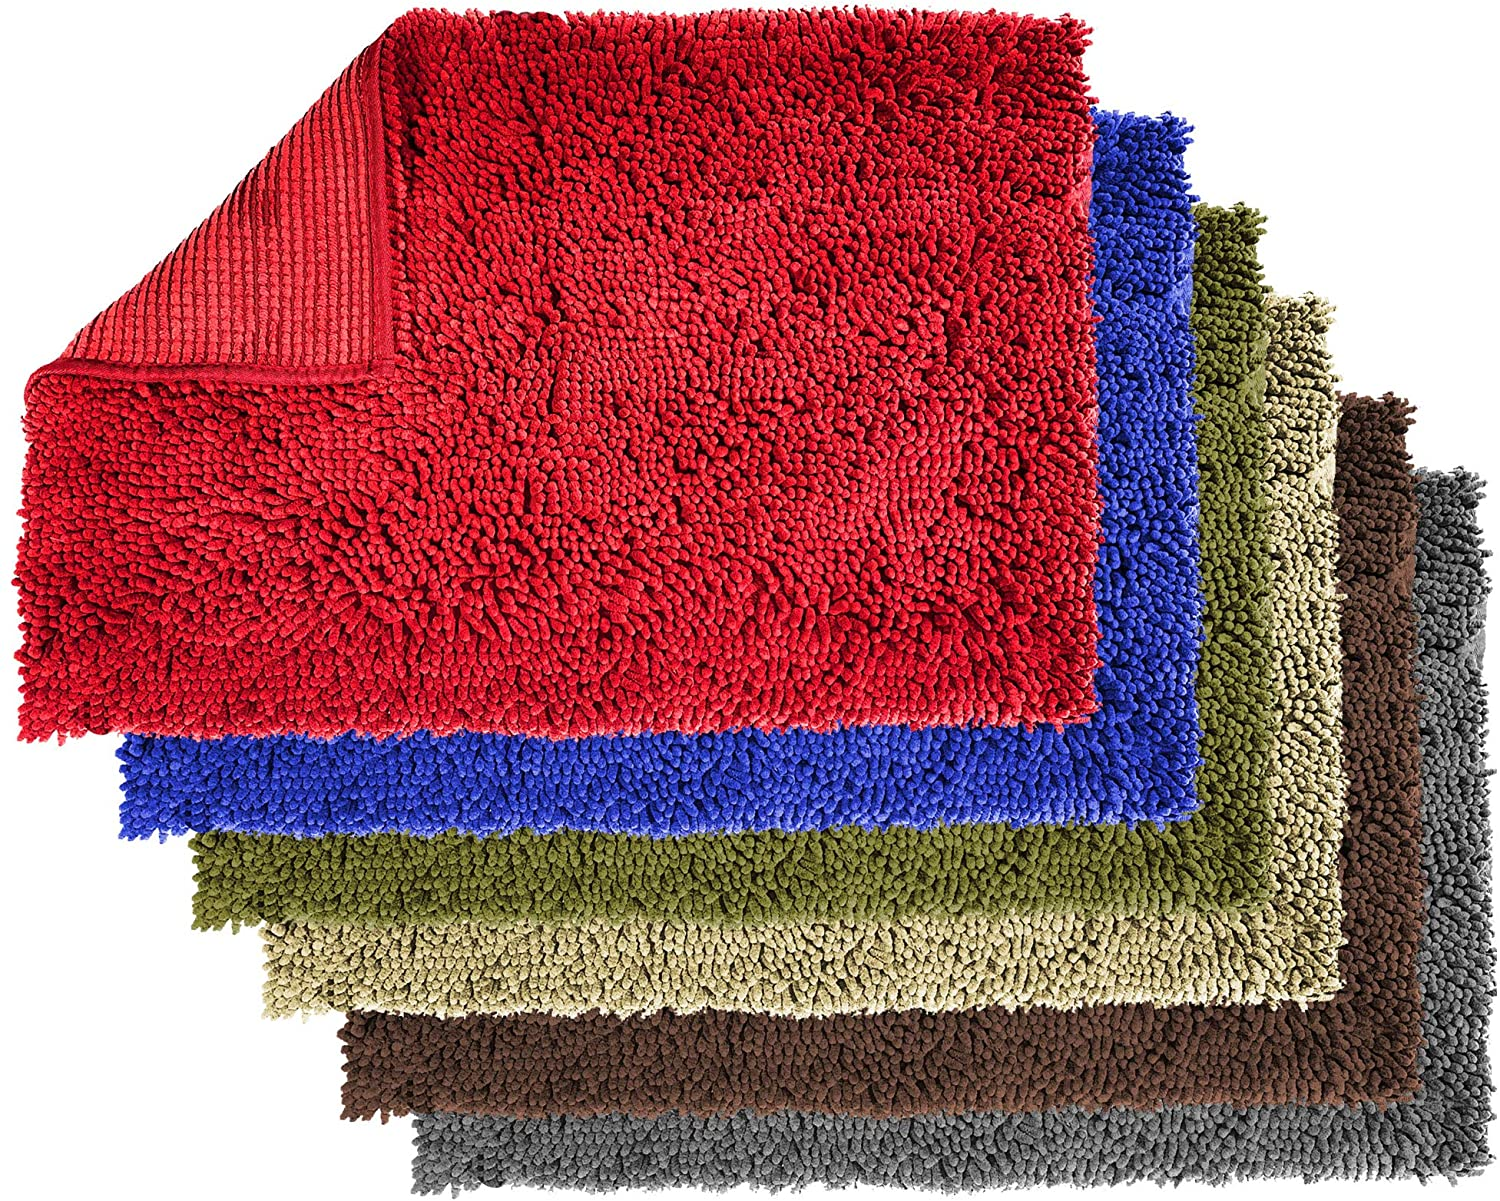 Enthusiast Gear Dog Mud Mat | Ultra Absorbent Microfiber Chenille Non-Slip Doormat, Dog Bowl Floor Mat, Crate Rug – No More Dirty Dogs with Muddy Paws – Washable